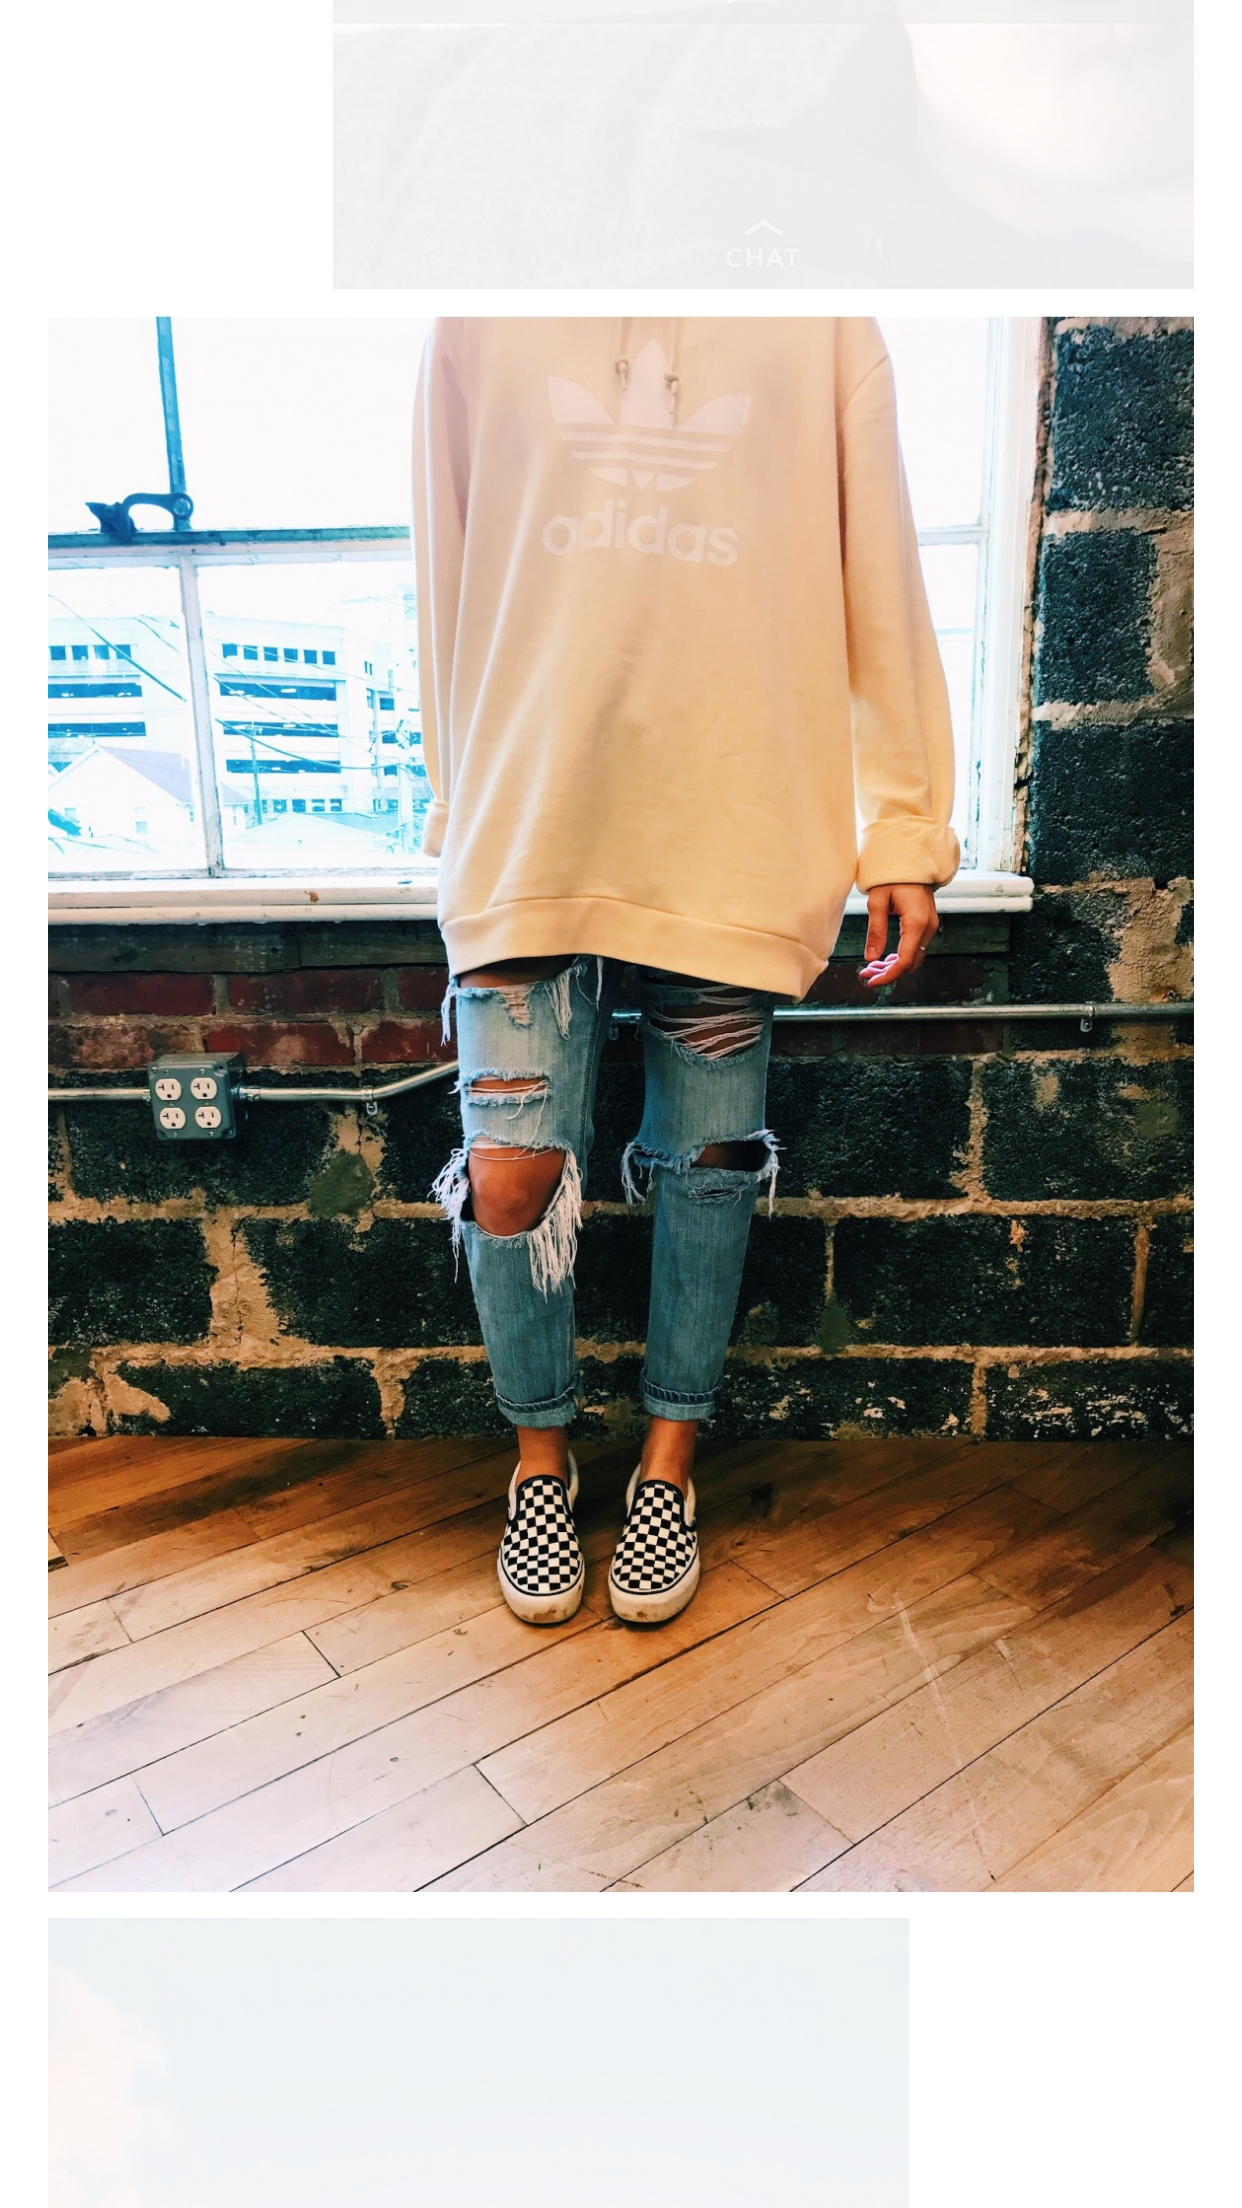 428a6ade11 Oversized Adidas Sweater + Ripped Jeans + Checkered Slip On Vans   Nice  Comfy Look